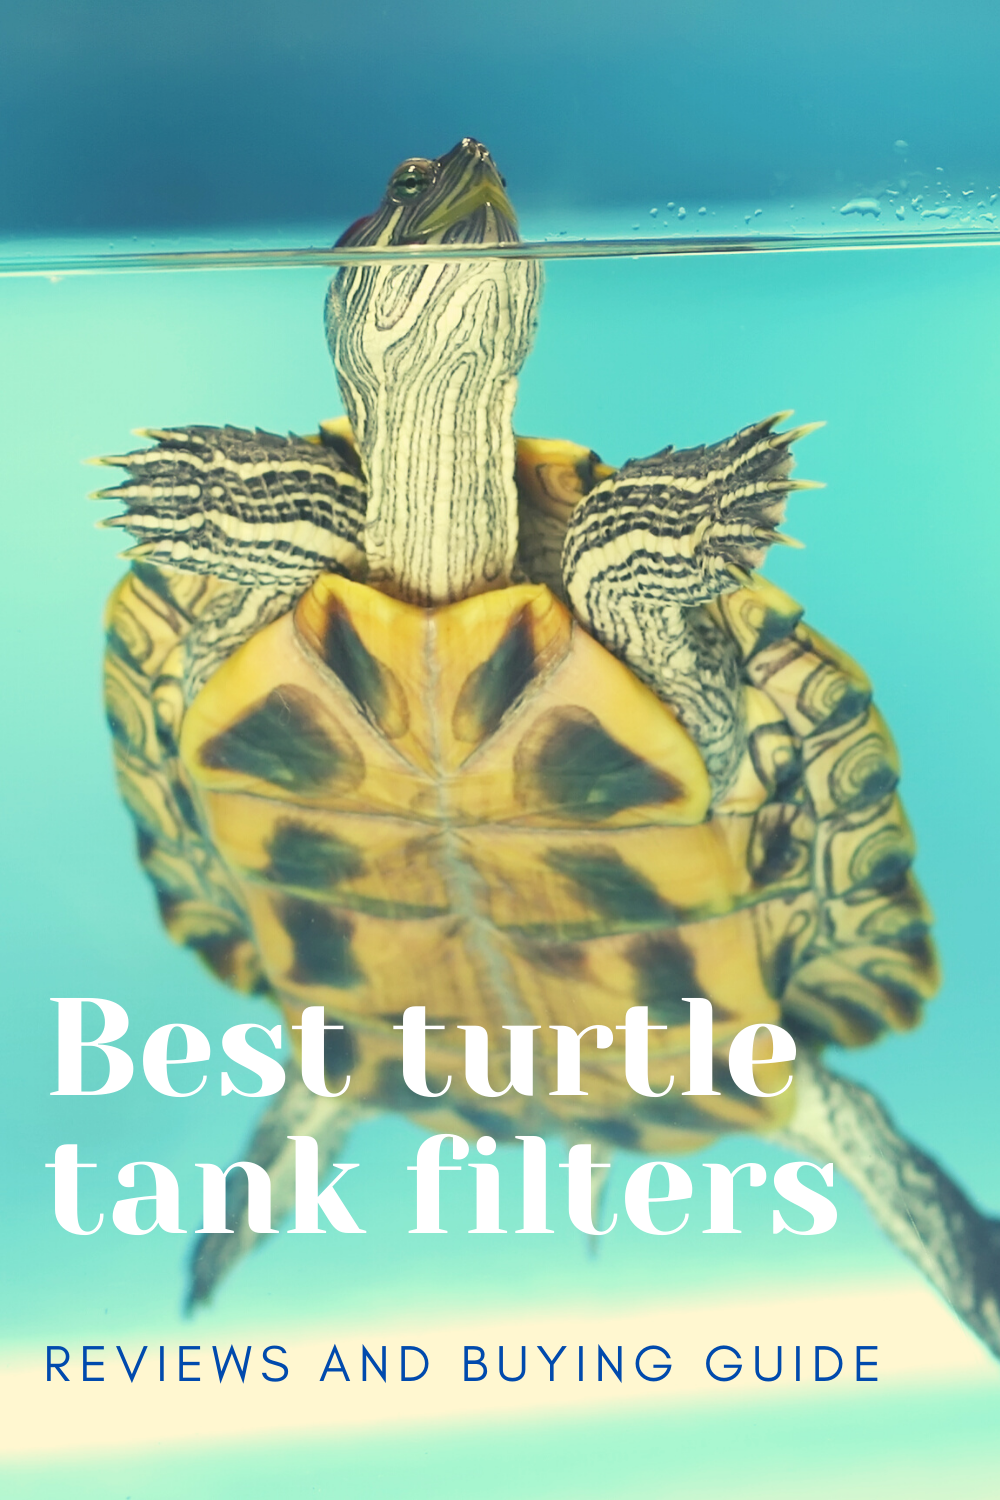 Best Turtle Tank Filters Reviews And Buying Guide in